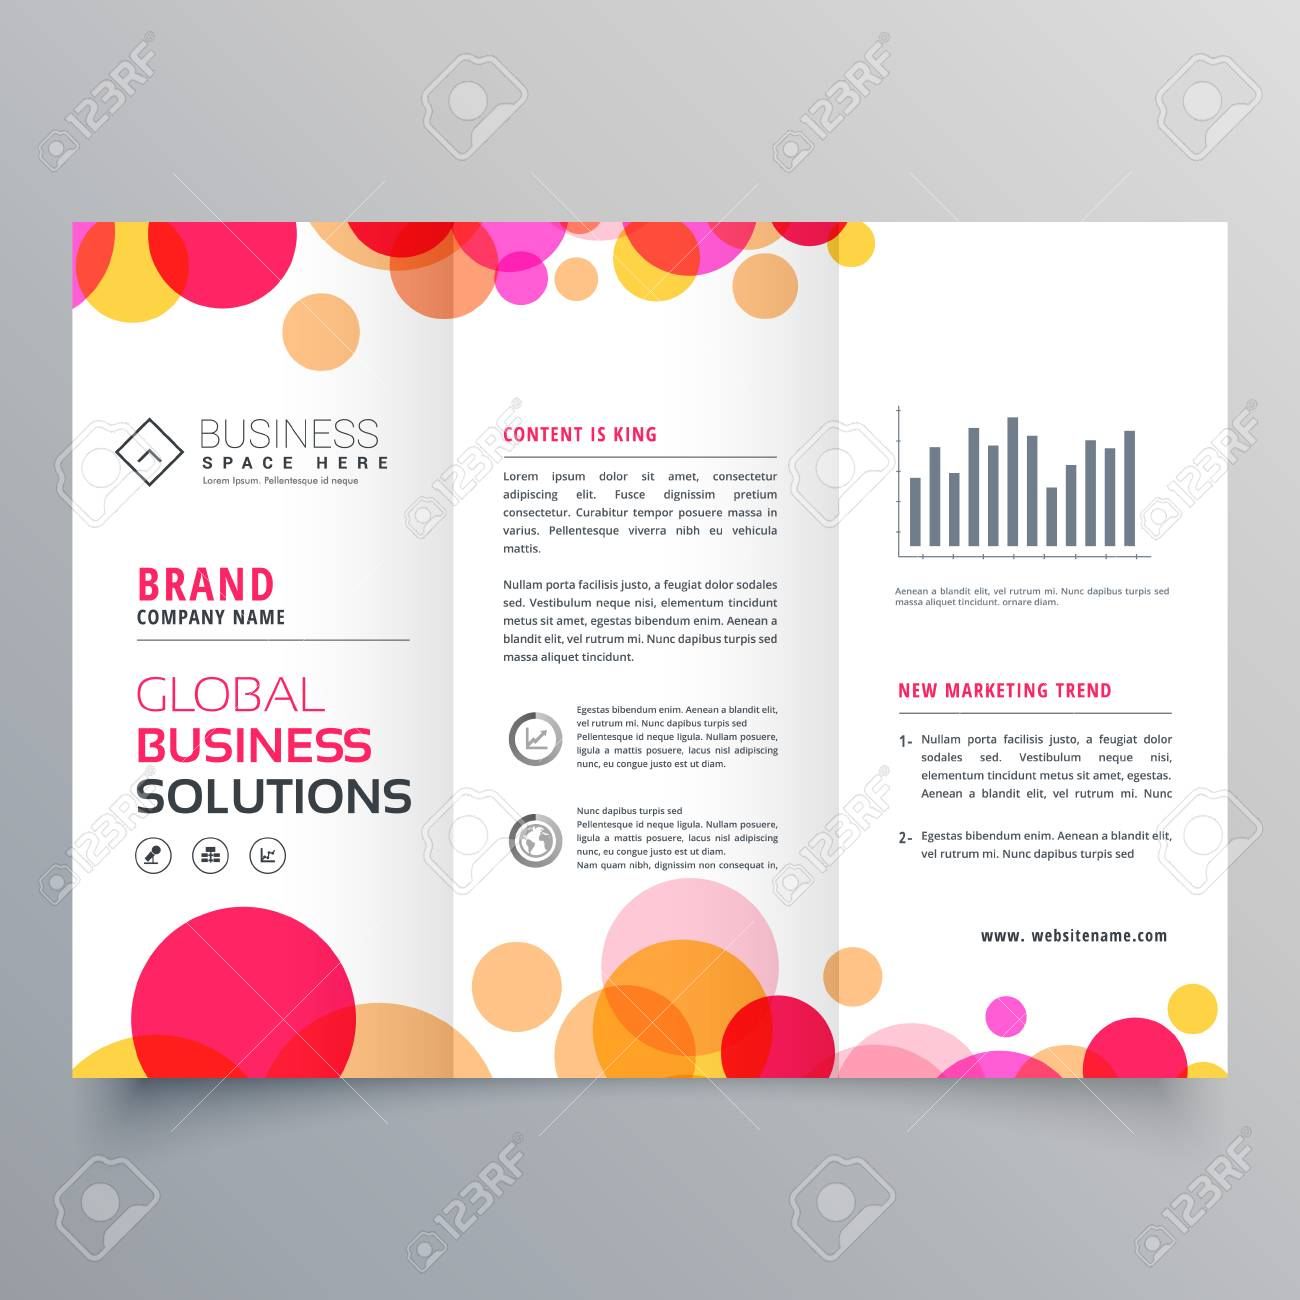 Creative Circles Tri Fold Brochure Template Design For Business  Presentation Stock Vector   87063670